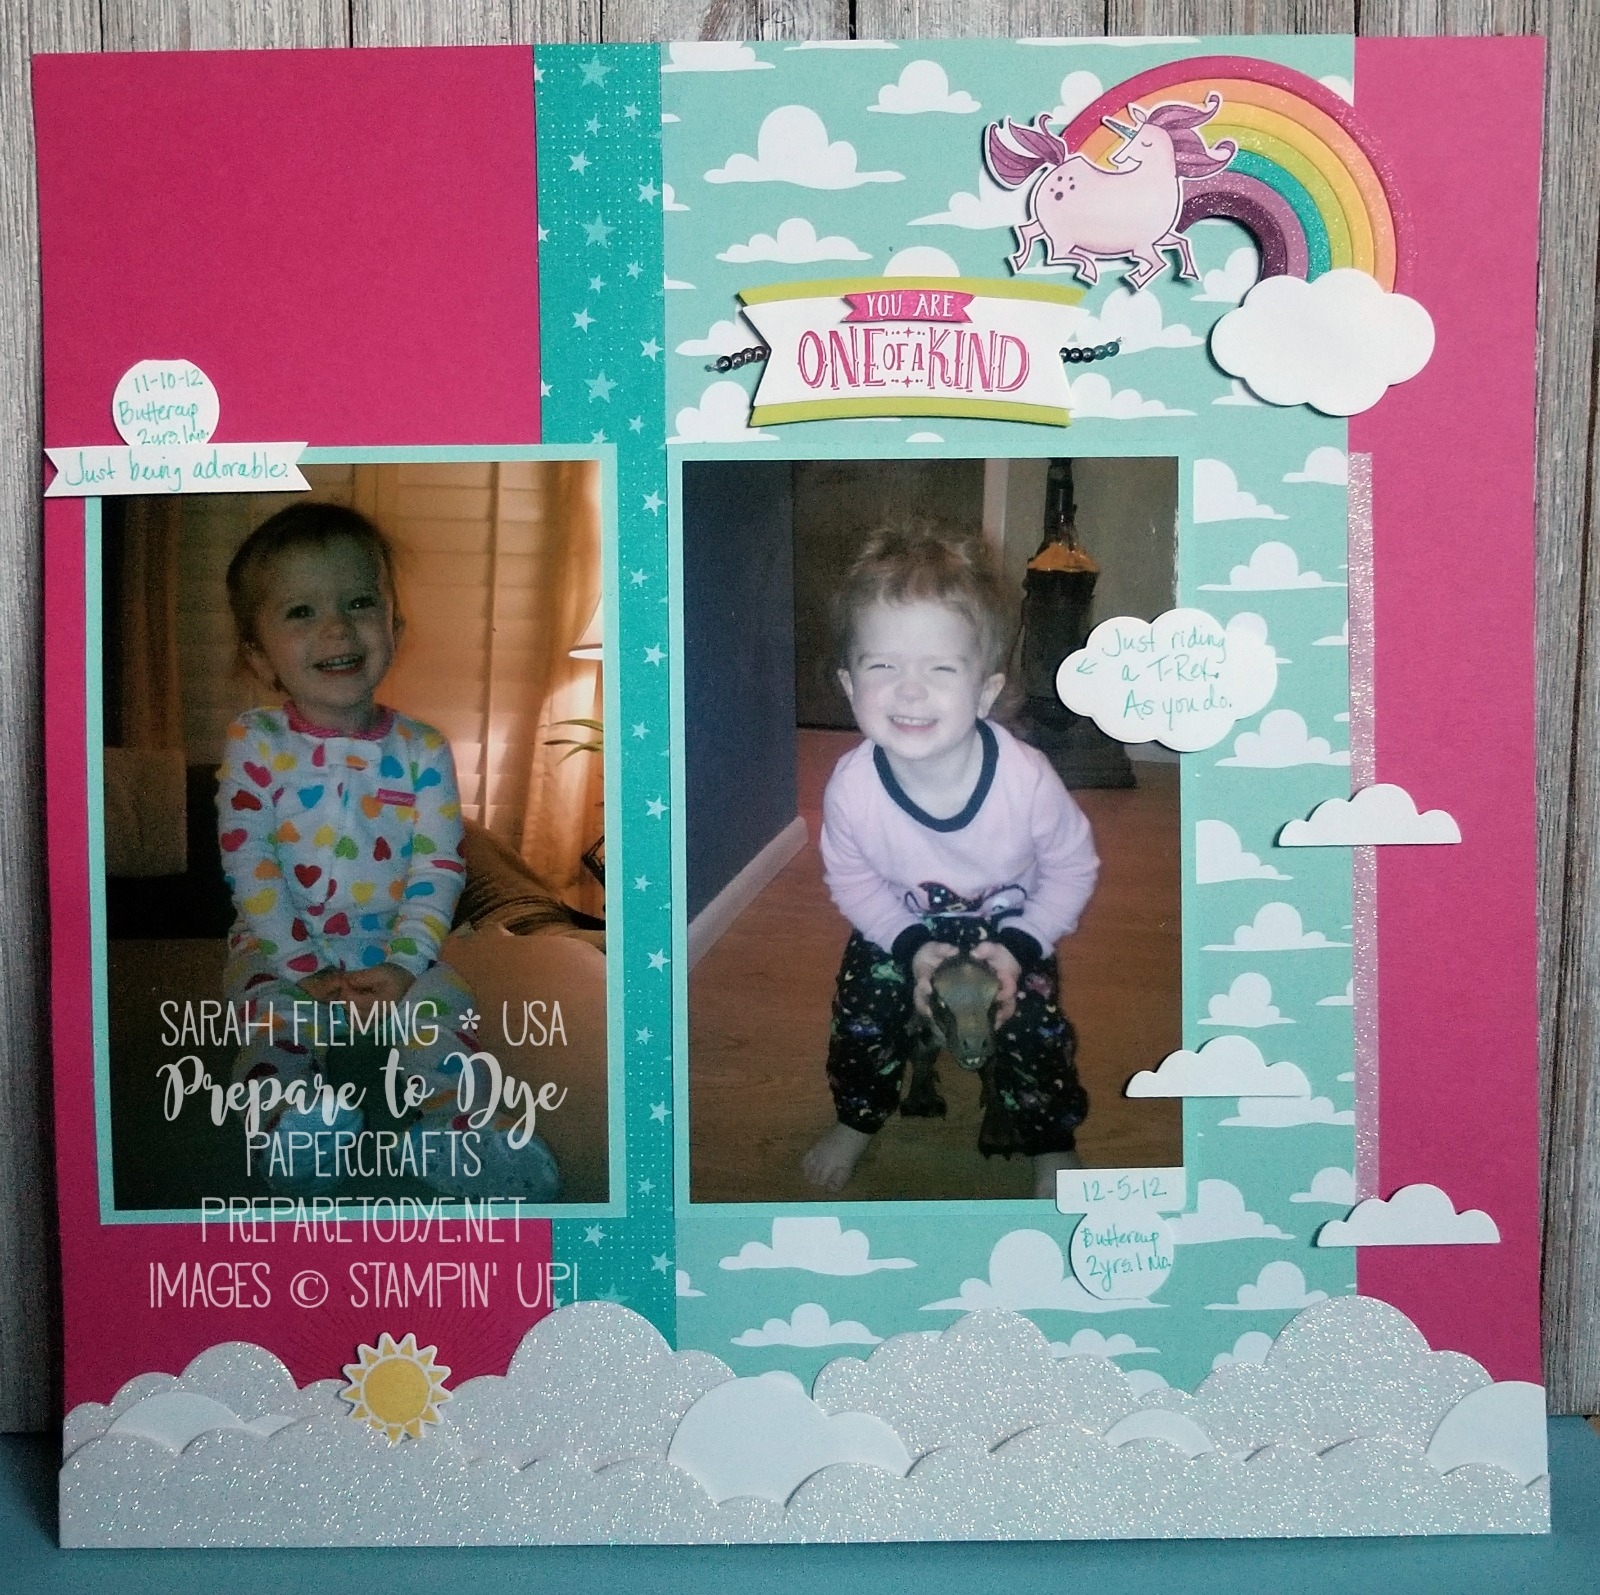 Stampin' Up! Magical Day scrapbook page, Magical Mates framelits, Sunshine & Rainbows, Rainbow Builder framelits, one of a kind layout, Myths & Magic paper - Sarah Fleming - Prepare to Dye Papercrafts